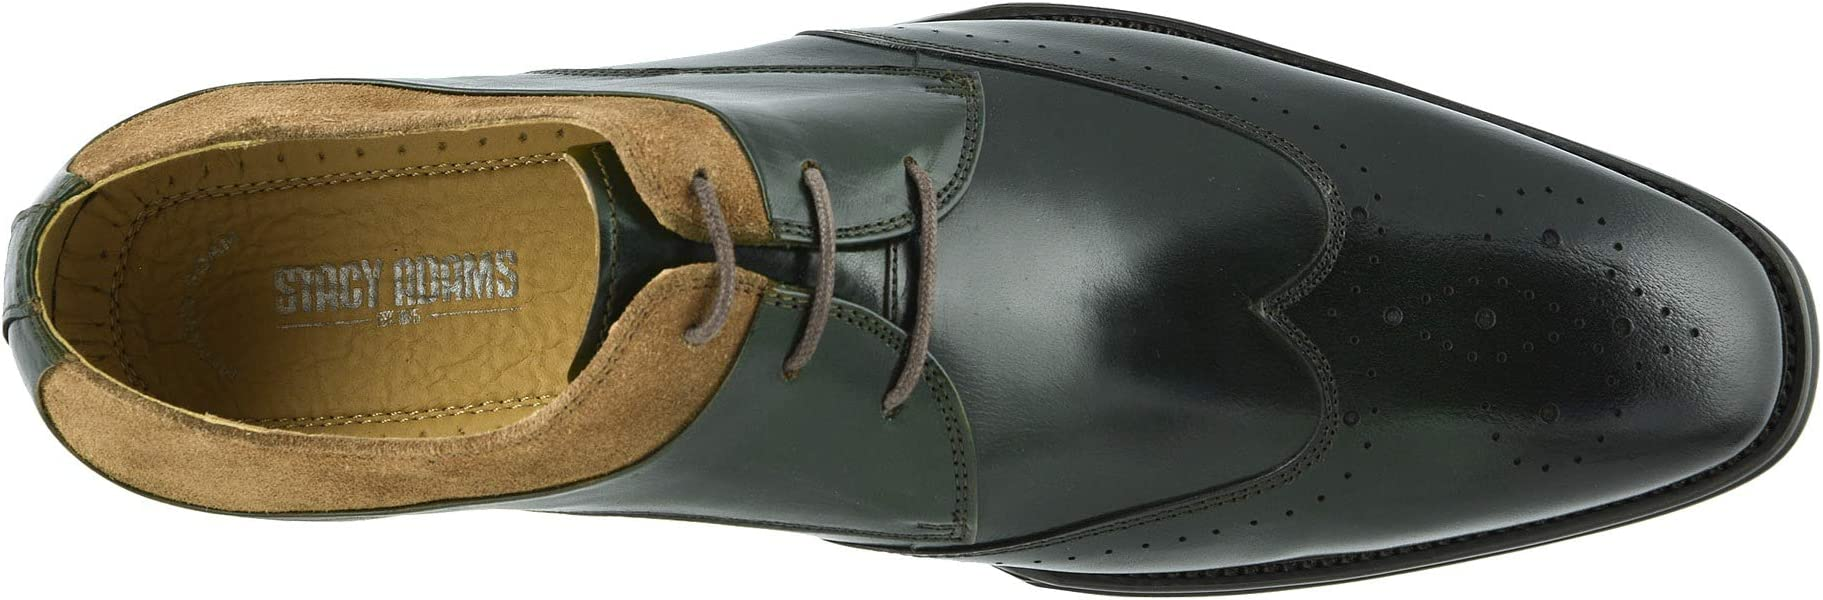 Stacy Adams Hewlett Wing Tip Oxford | Men's shoes | 2020 Newest